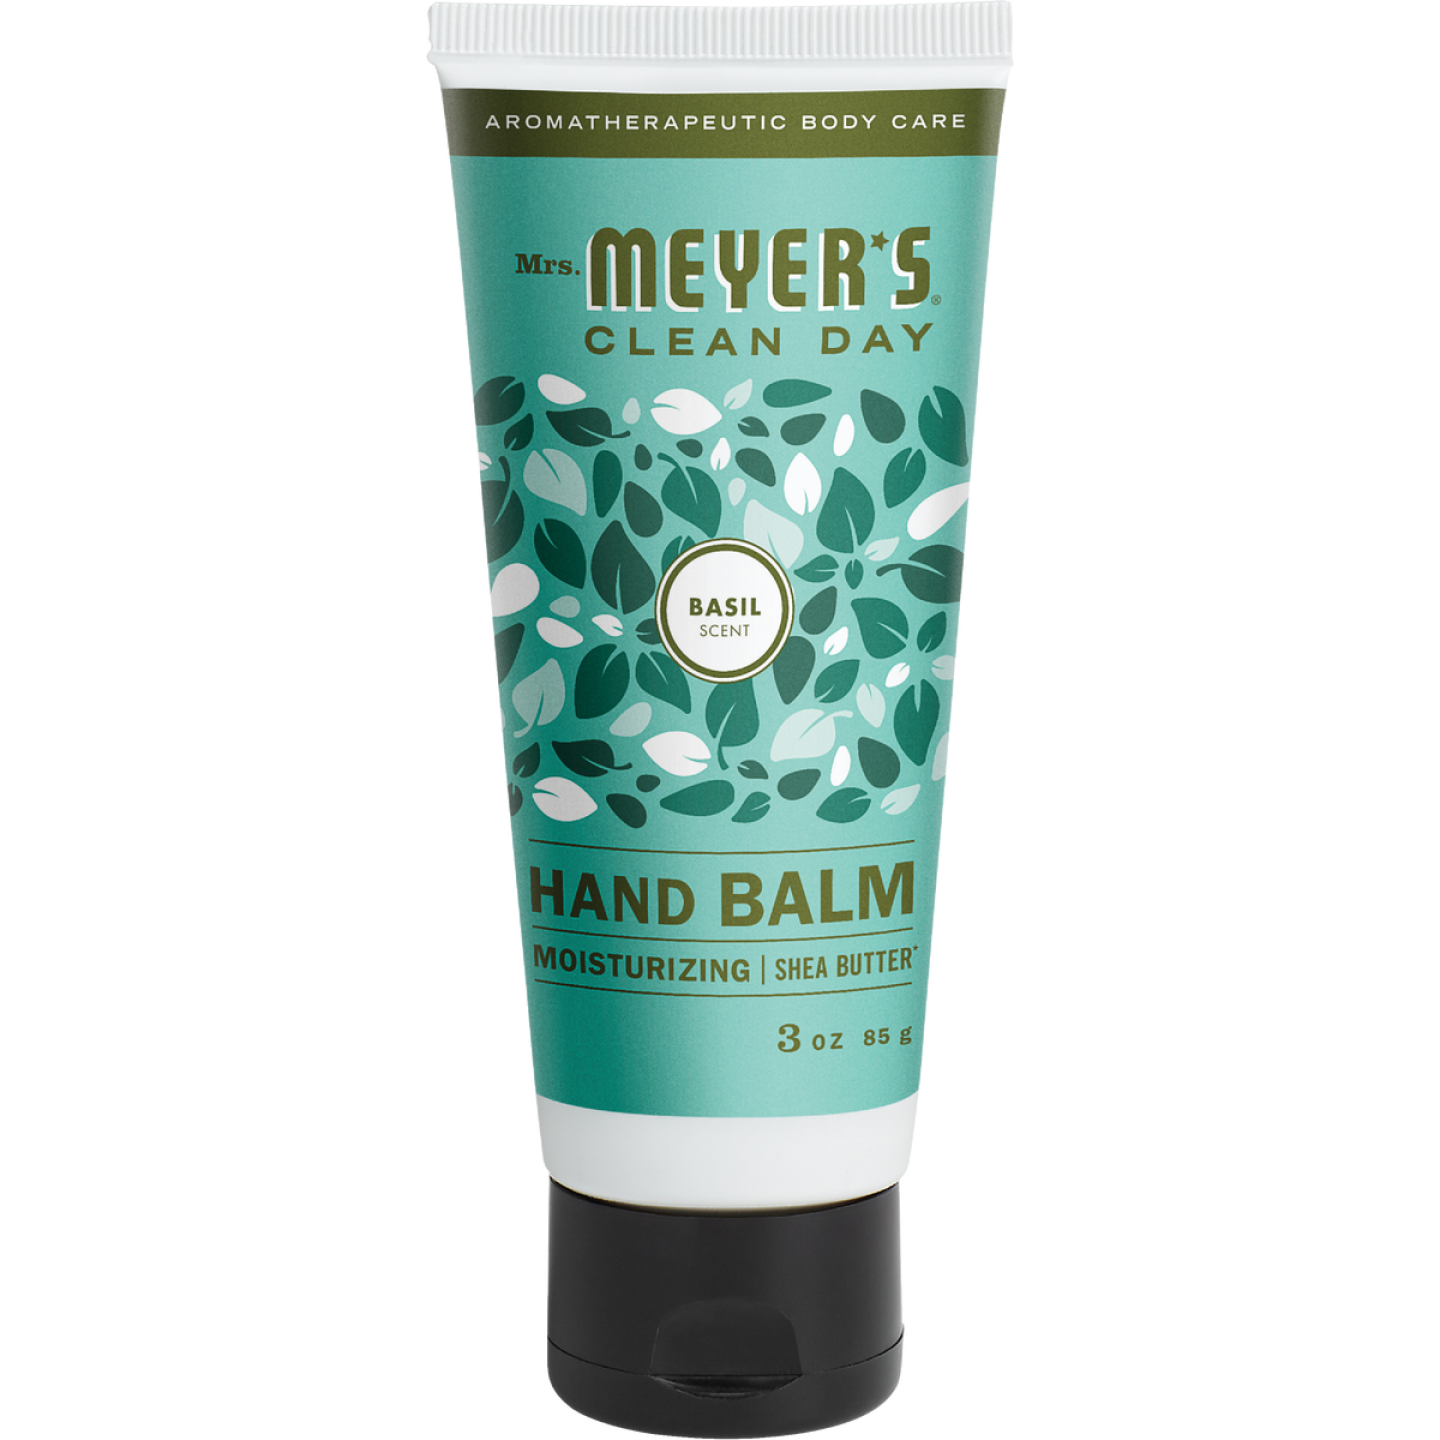 Mrs. Meyer's Clean Day 3 Oz. Basil Hand Balm Image 1